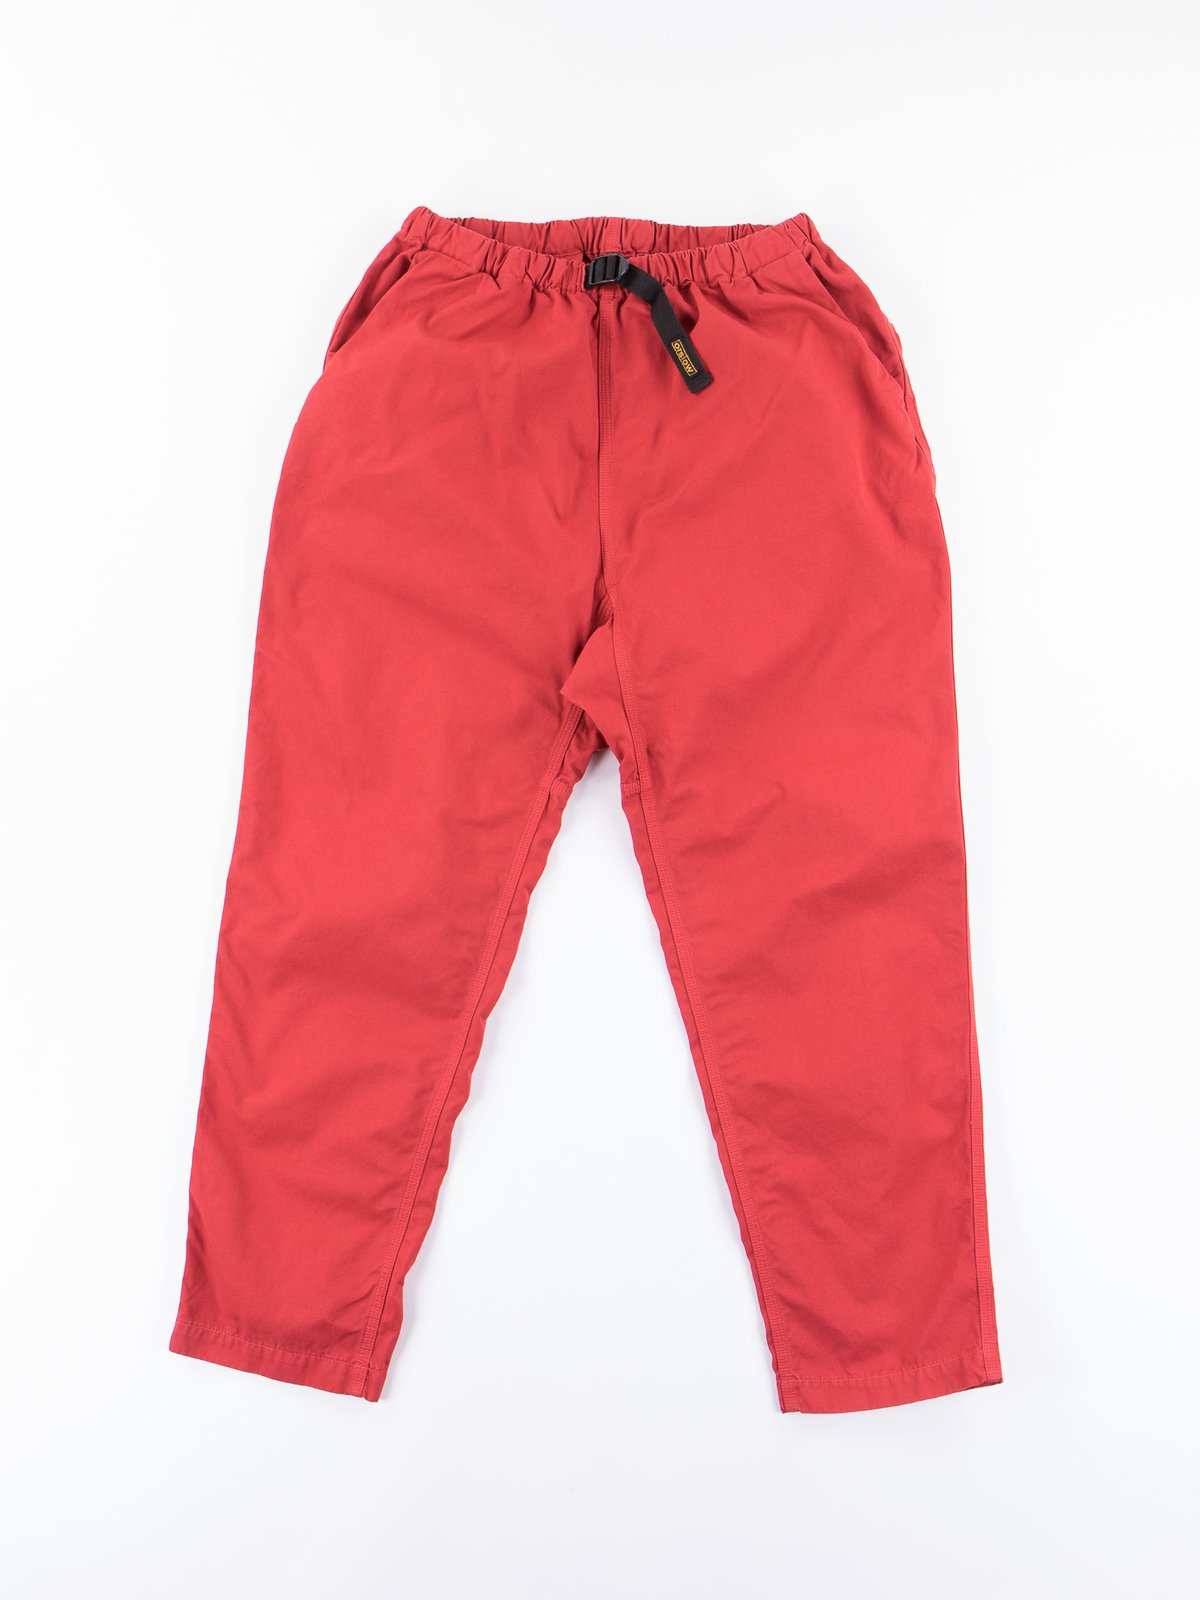 Red Overdyed Poplin Climbing Pant - Image 1